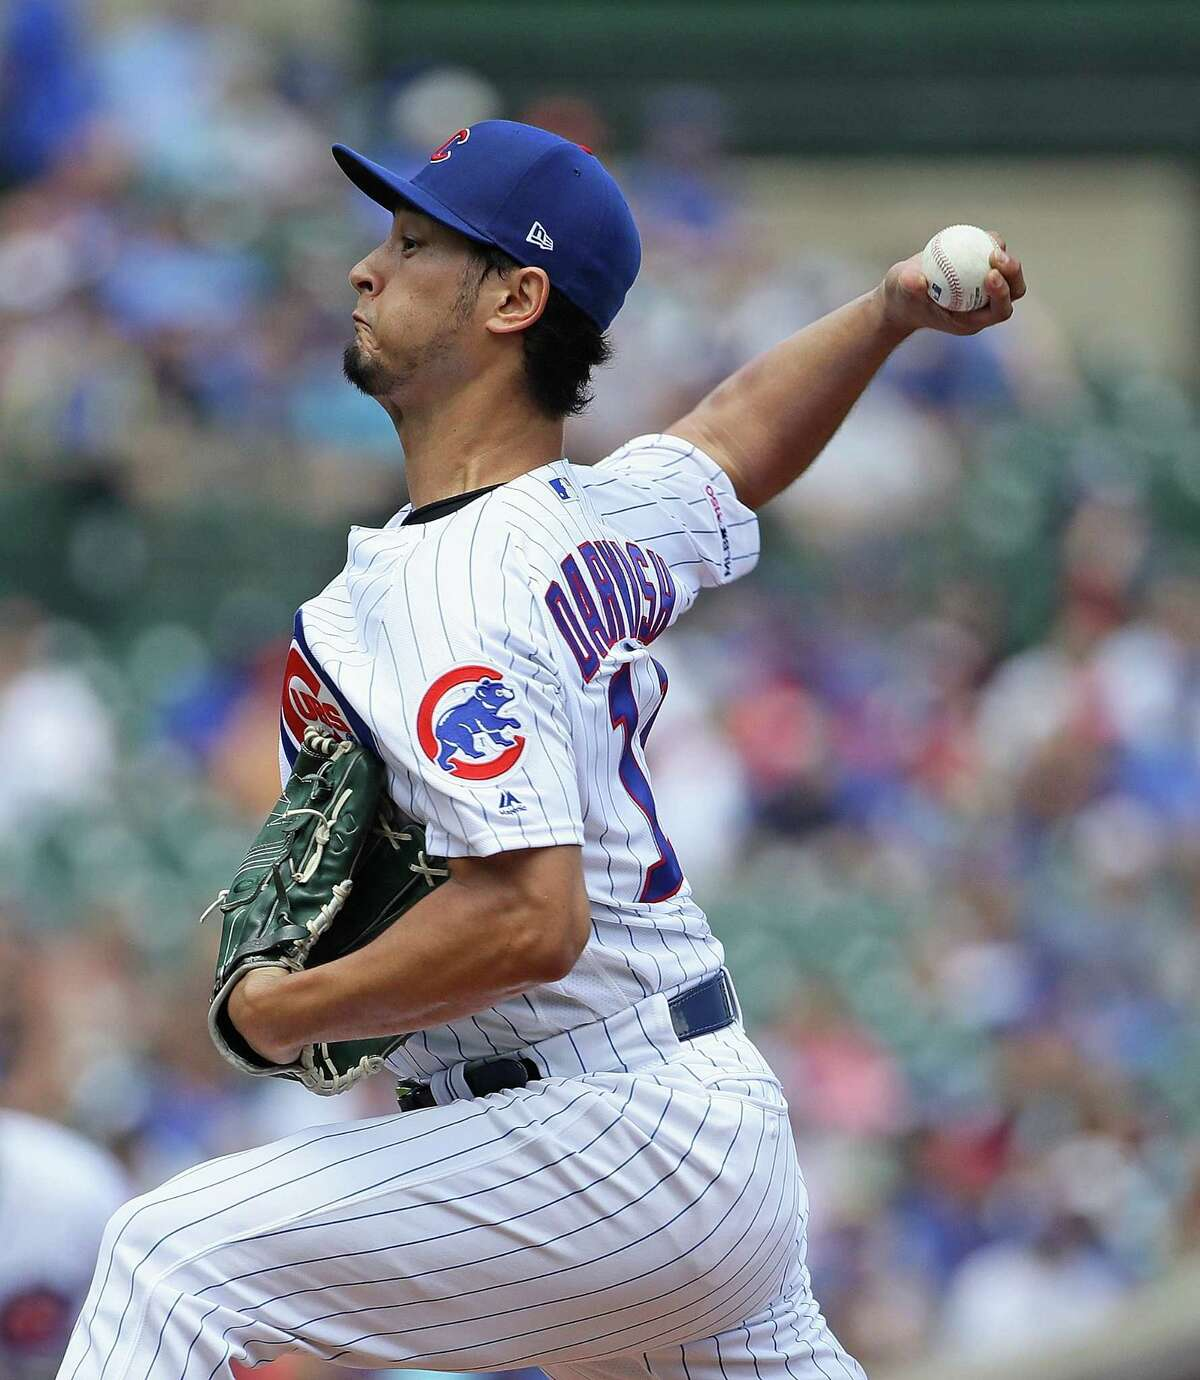 CHICAGO, ILLINOIS - JULY 17: Starting pitcher Yu Darvish #11 of the Chicago Cubs delivers the ball against the Cincinnati Reds at Wrigley Field on July 17, 2019 in Chicago, Illinois. (Photo by Jonathan Daniel/Getty Images)